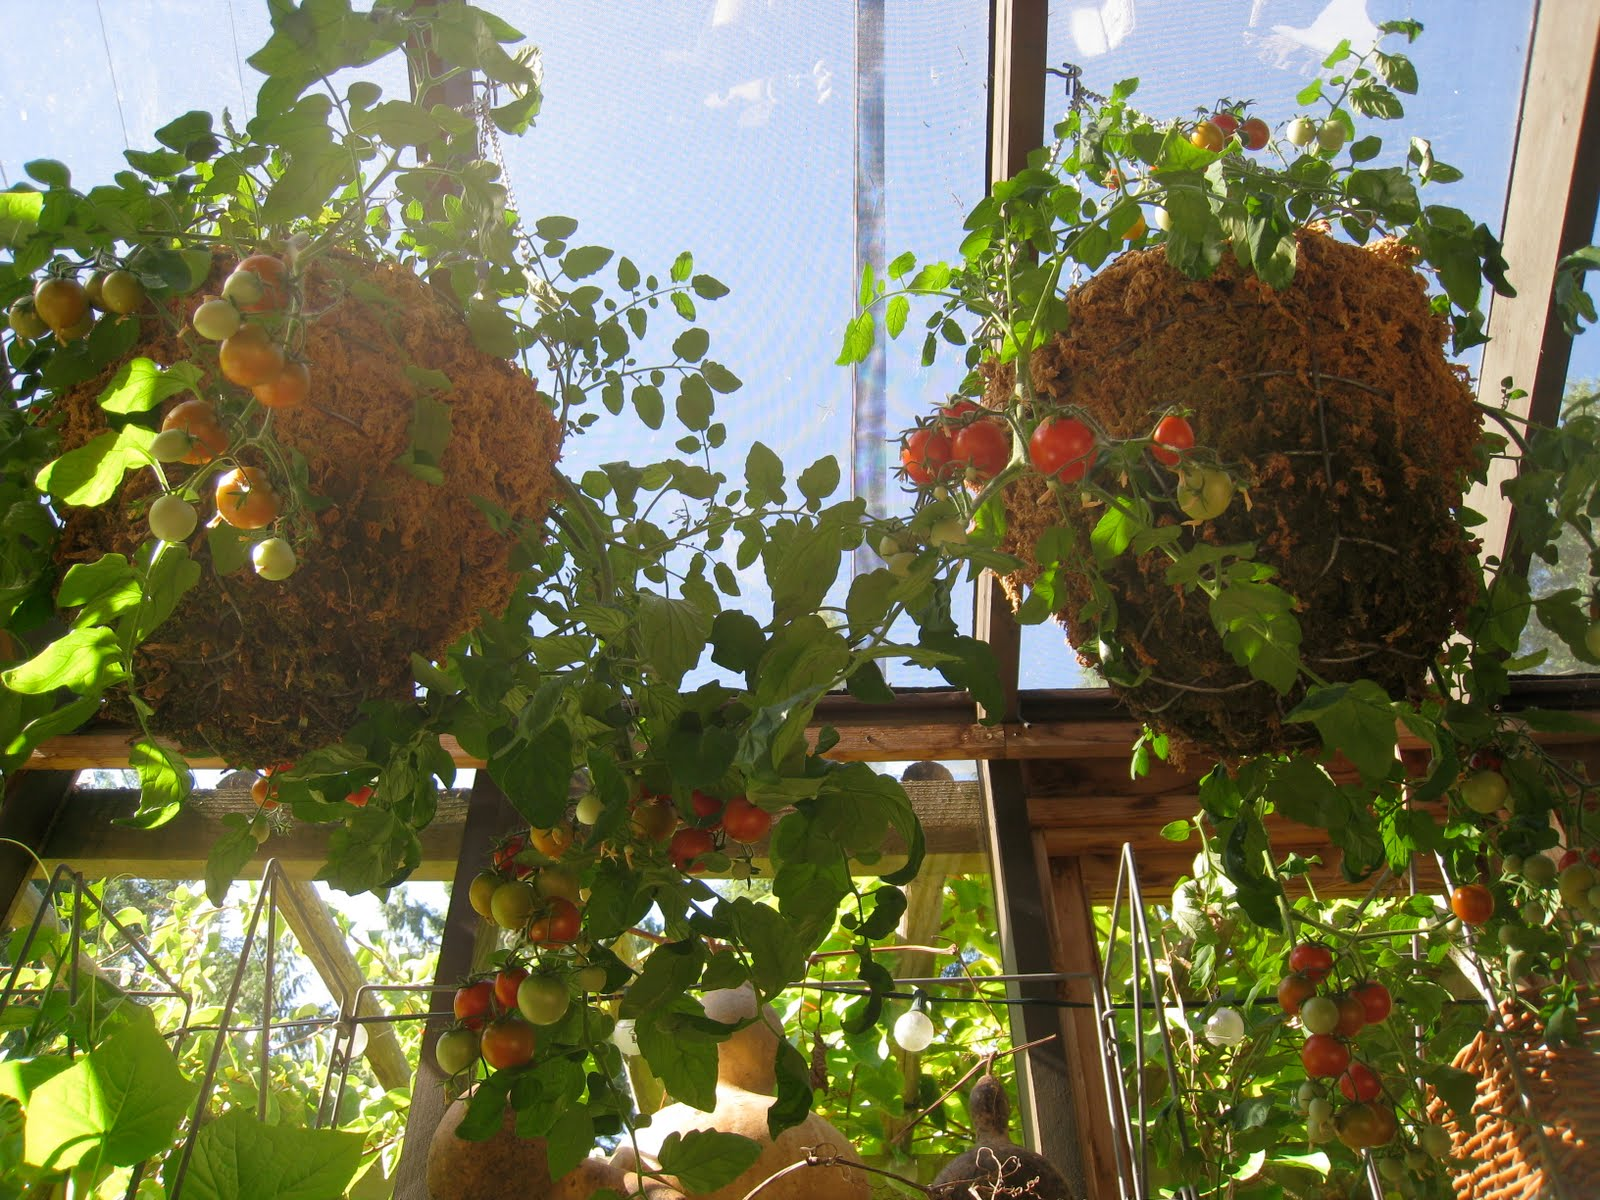 How much to water tomatoes in containers - Every Spring For 4 Years Now I Ve Been Starting A Couple Hundred Tumbler Tomato Plants From Seed I Sell Most Of Them At The First Farmer S Market Of The